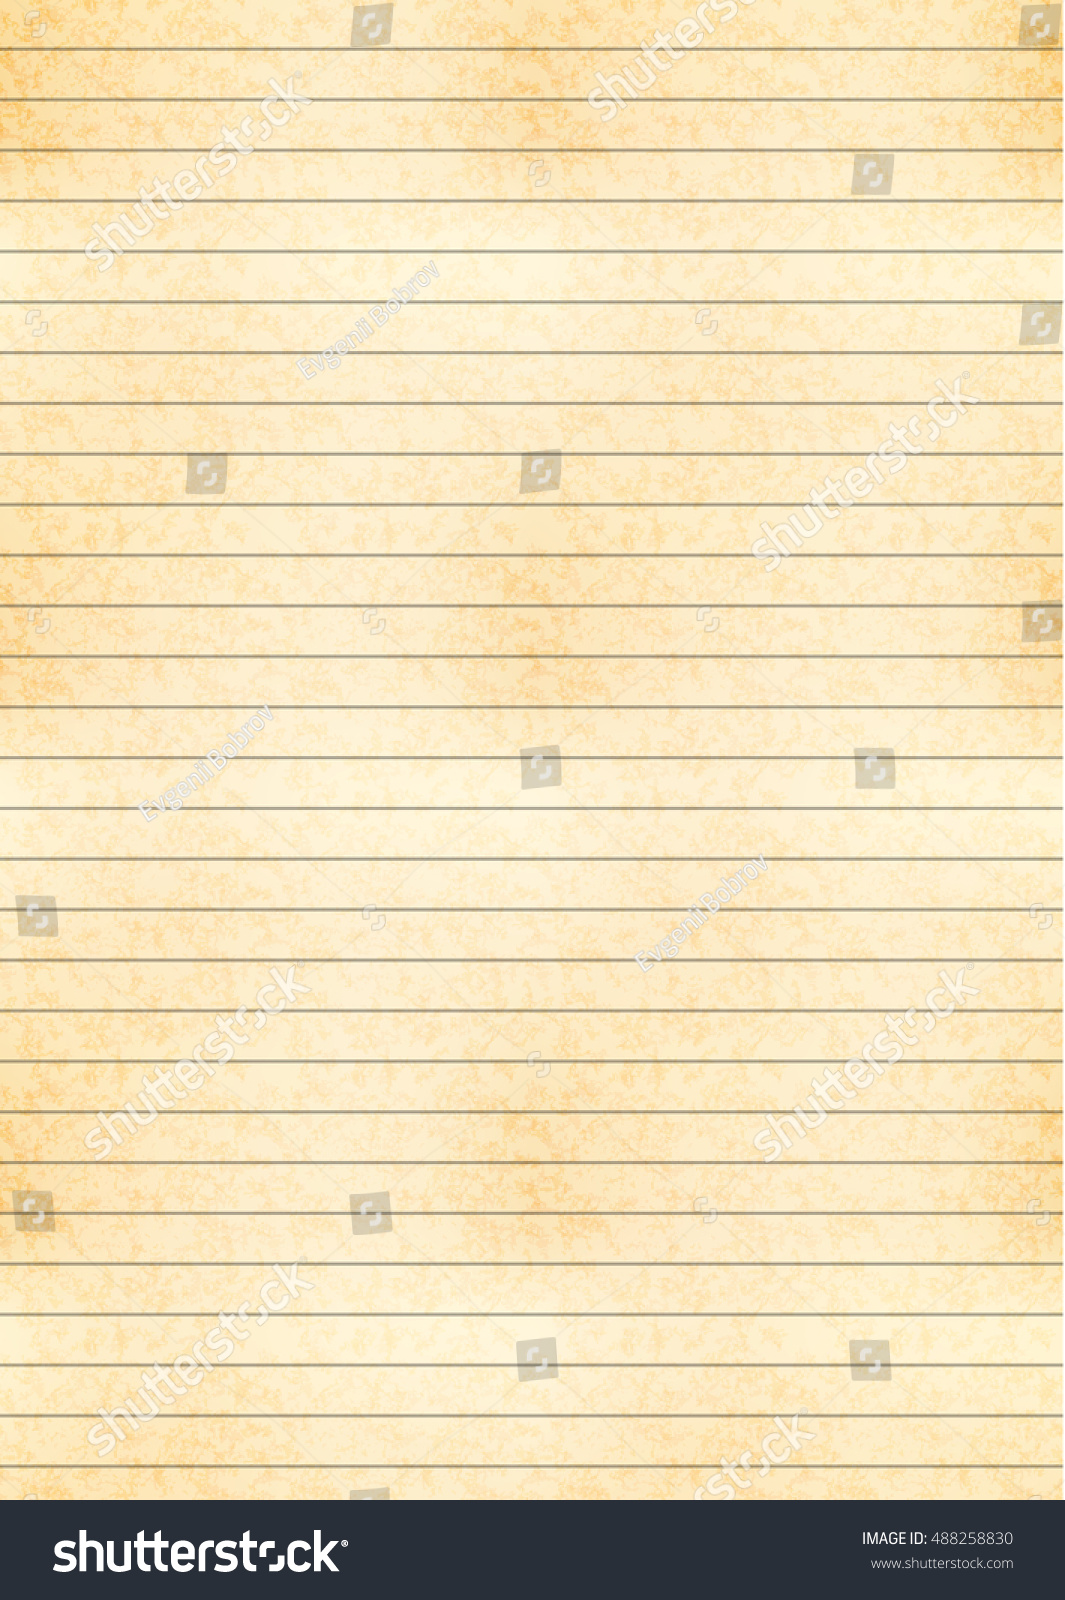 vertical a 4 size yellow sheet old stock vector royalty free